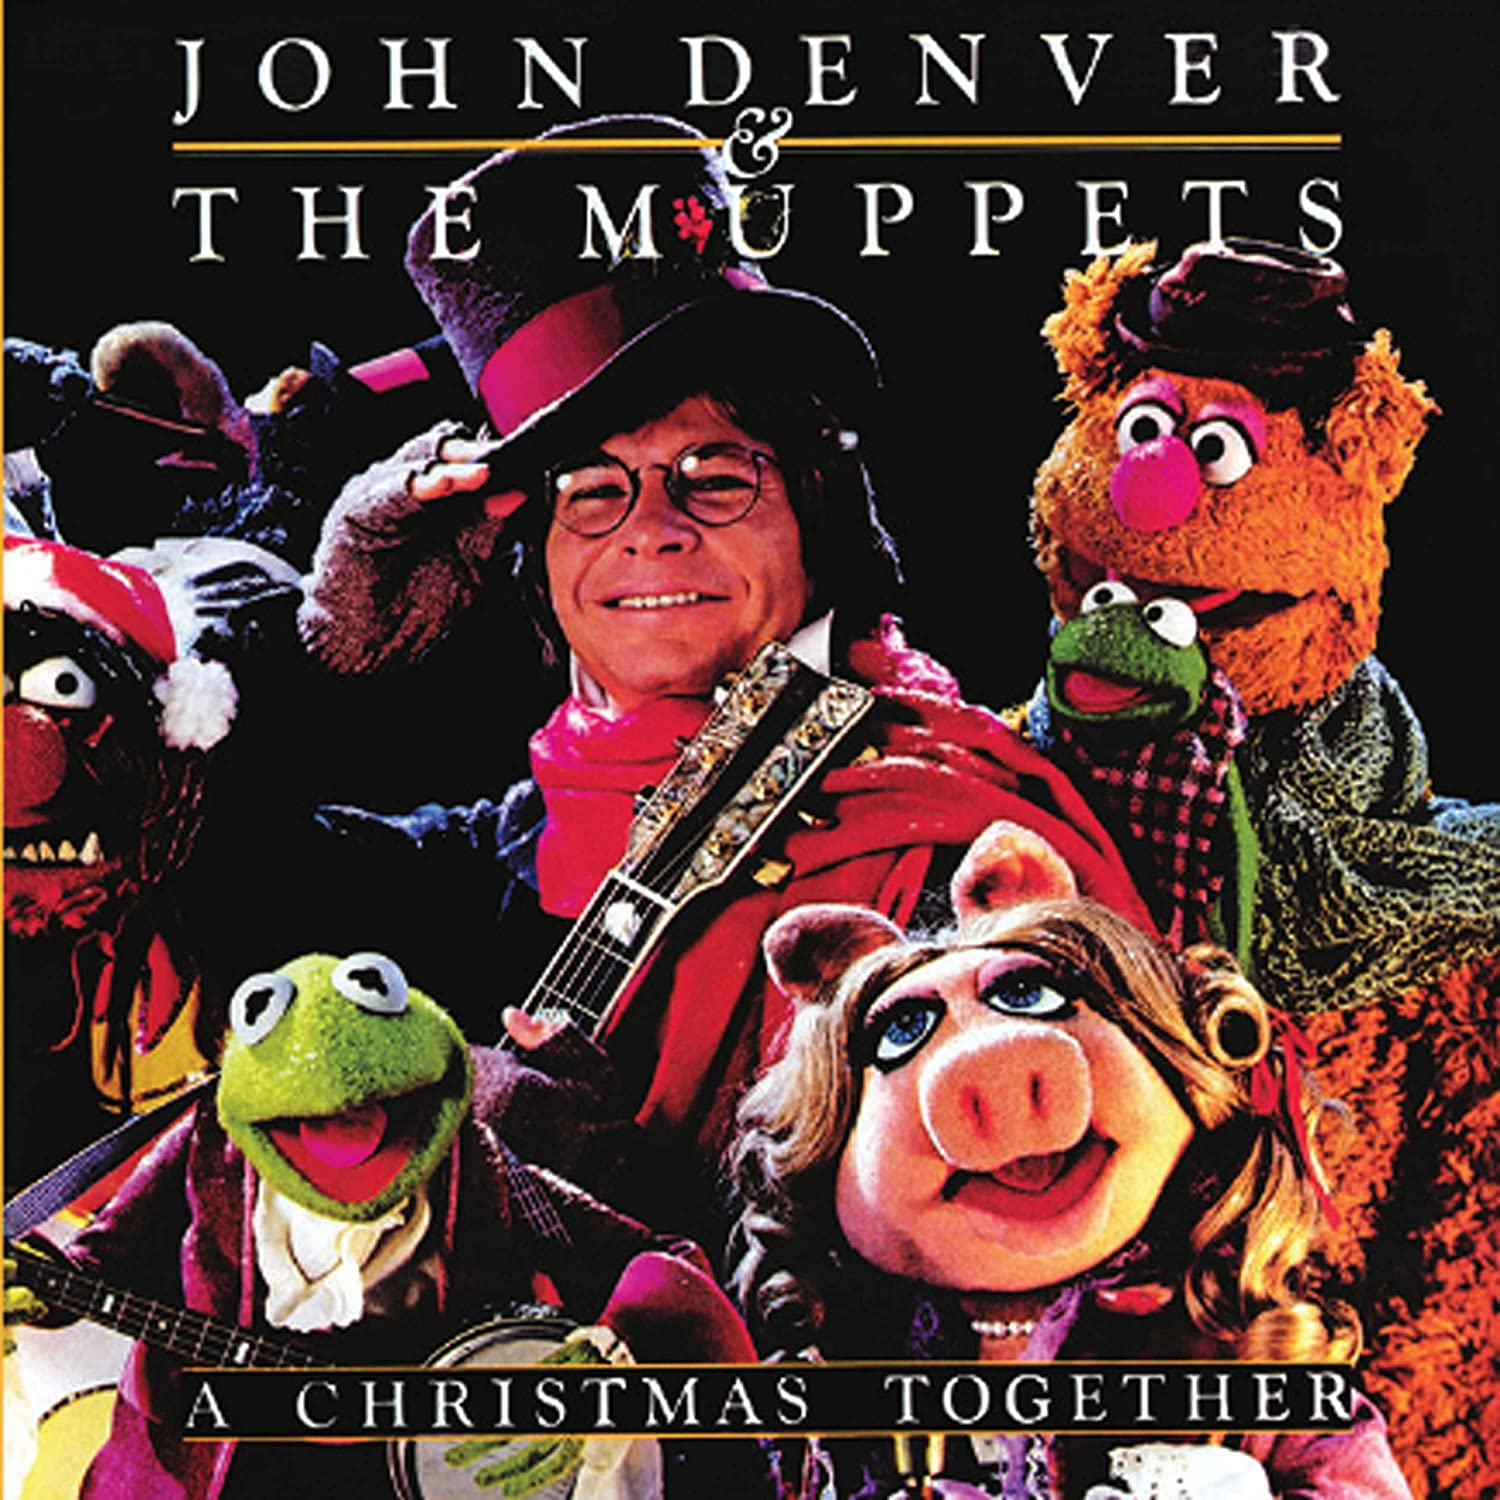 John Denver & The Muppets - A Christmas Together [LP] - Amazon.com Music